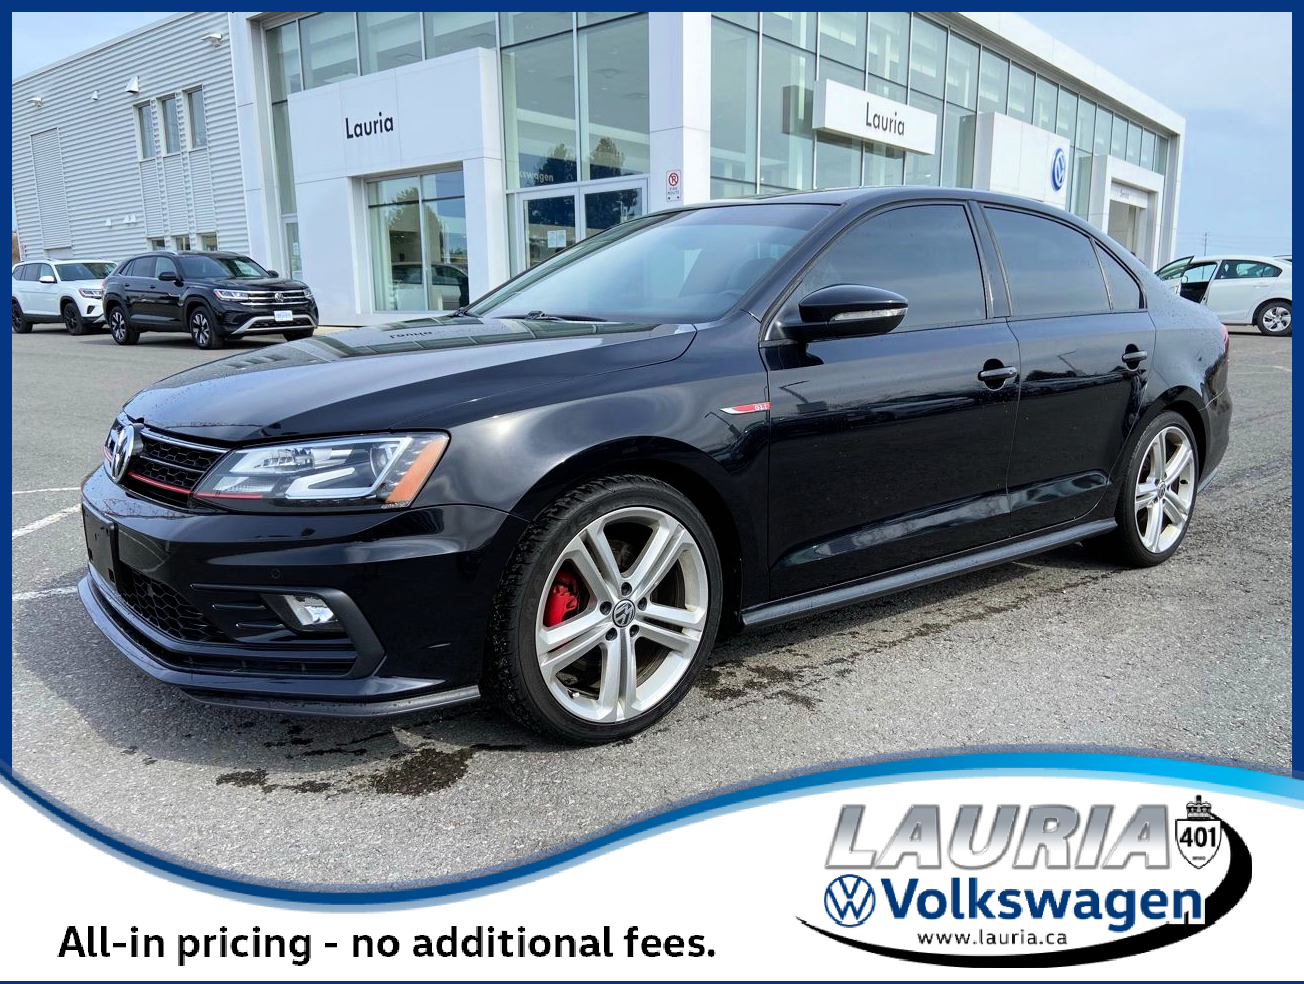 Pre-Owned 2017 Volkswagen Jetta GLI Autobahn Manual - LOW KMS!